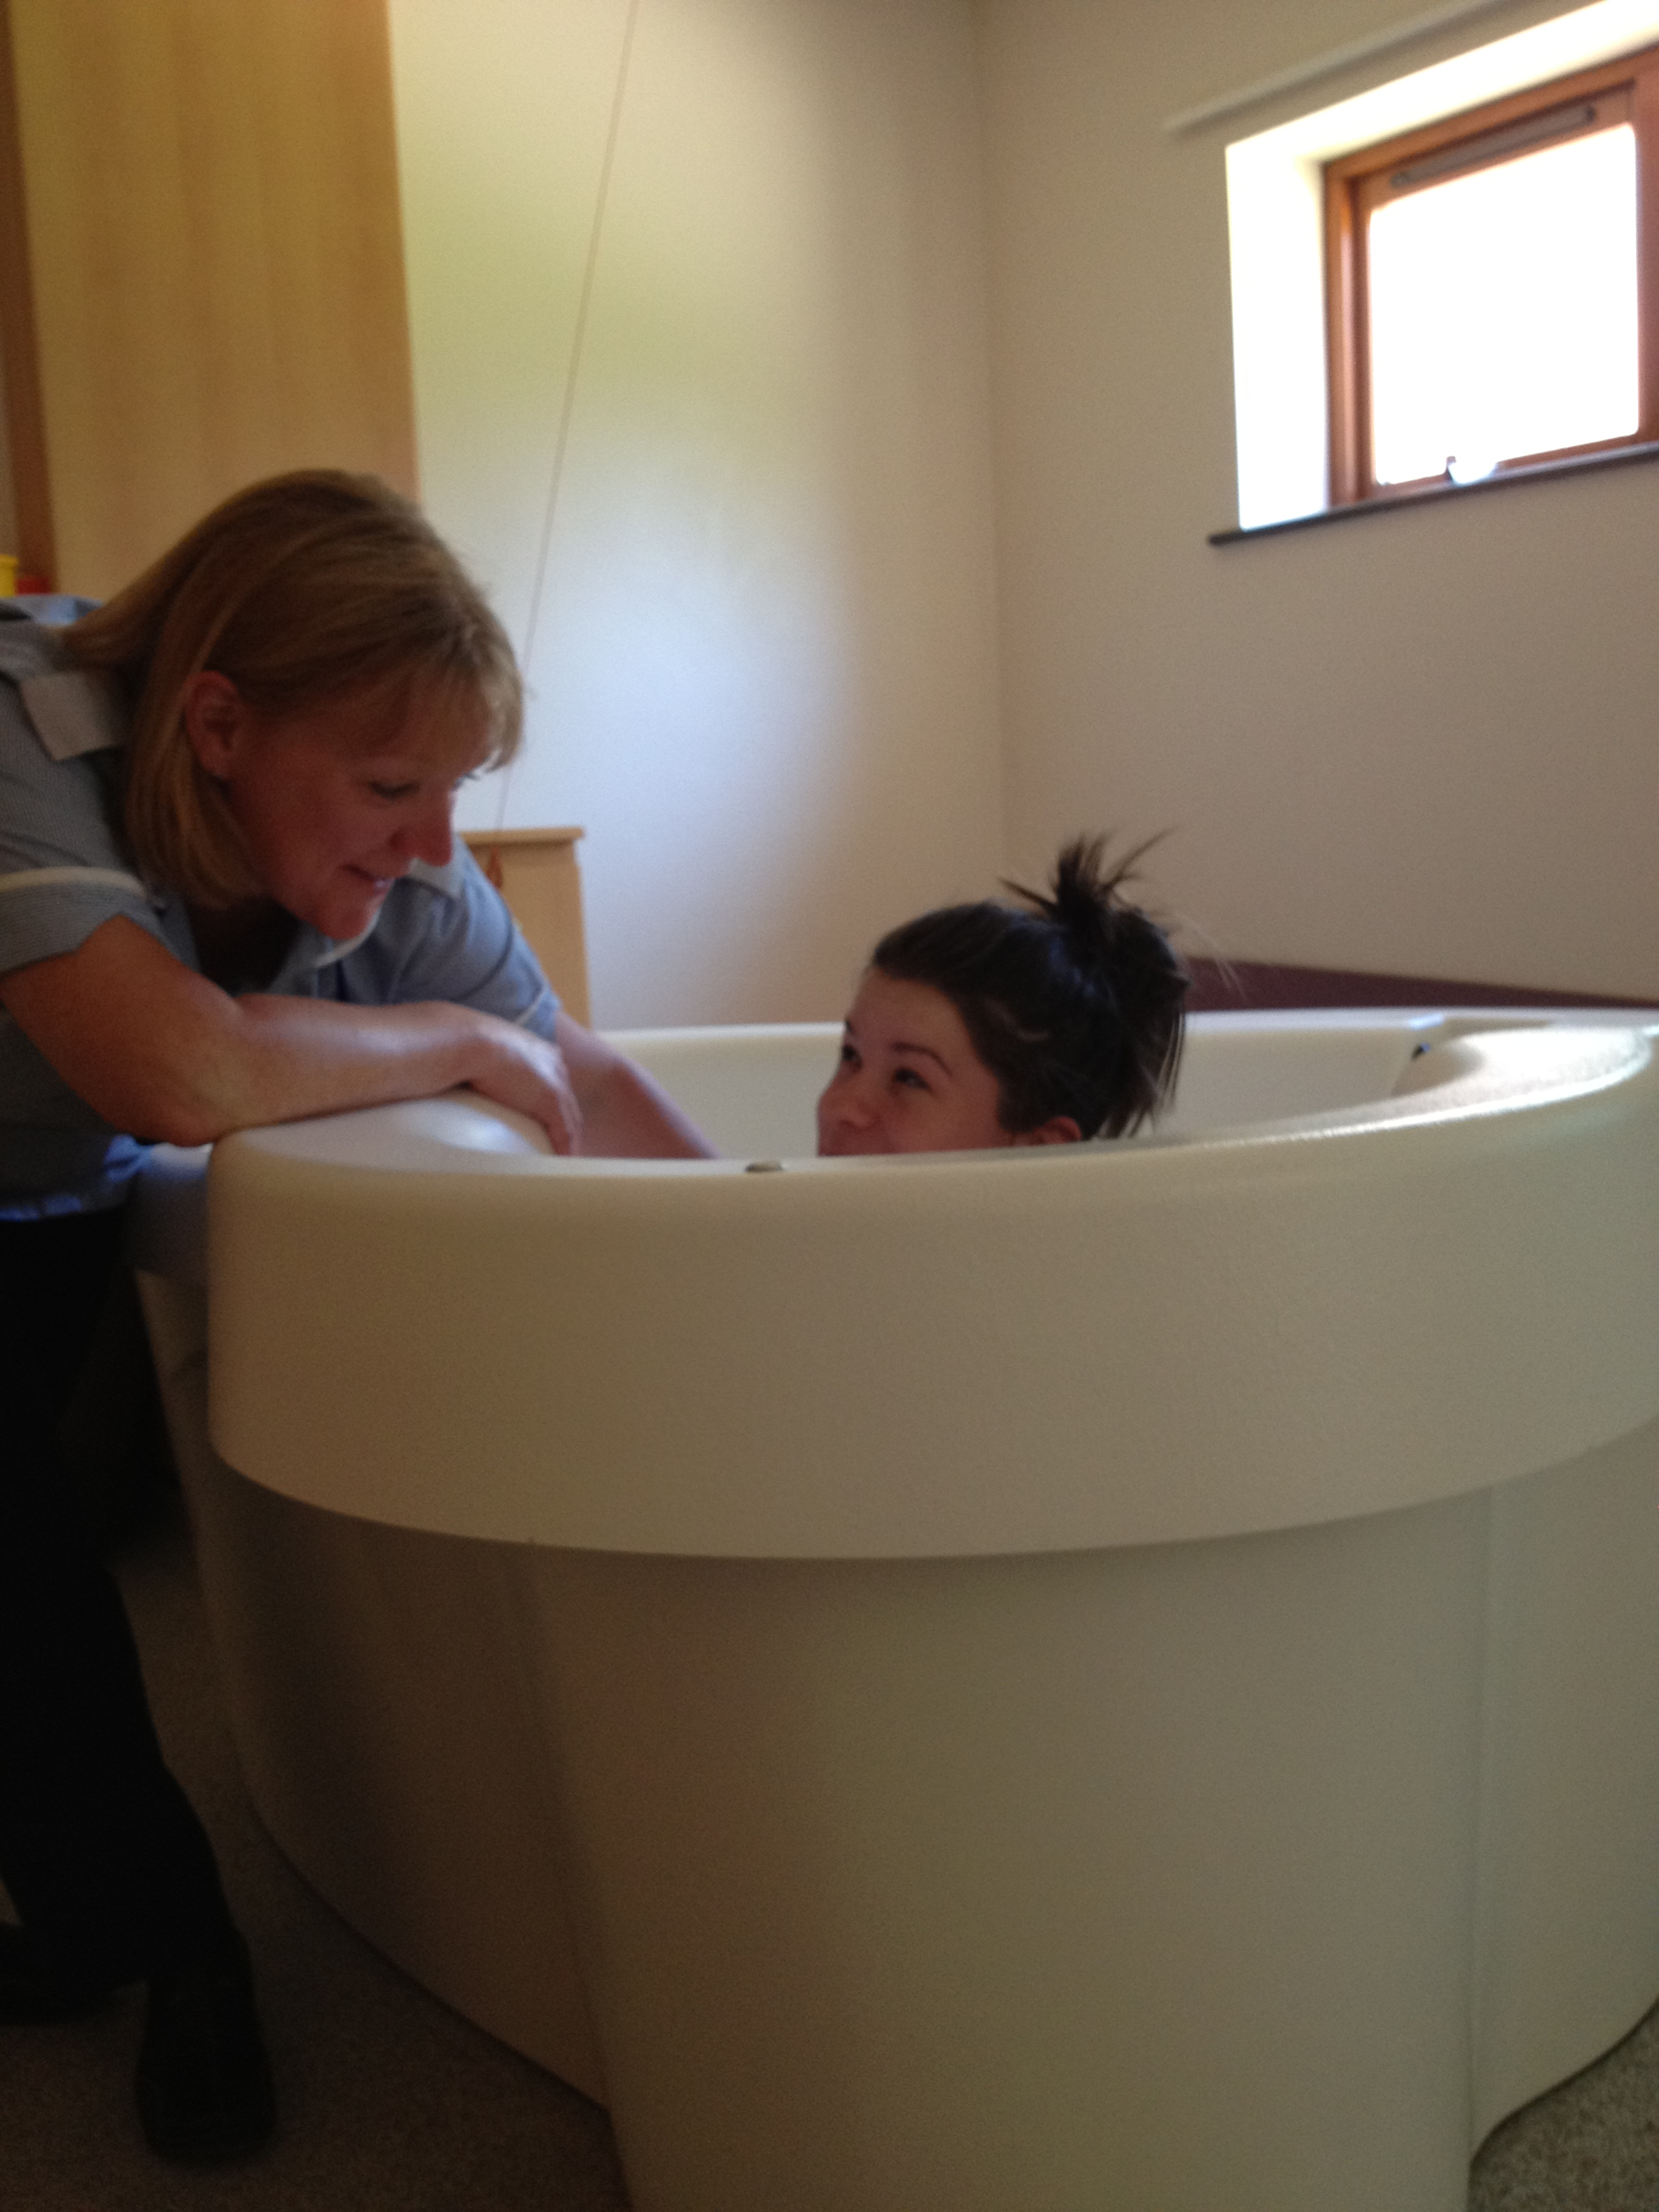 My daughter Olivia trying out one of the pools at Blackburn Birth Centre